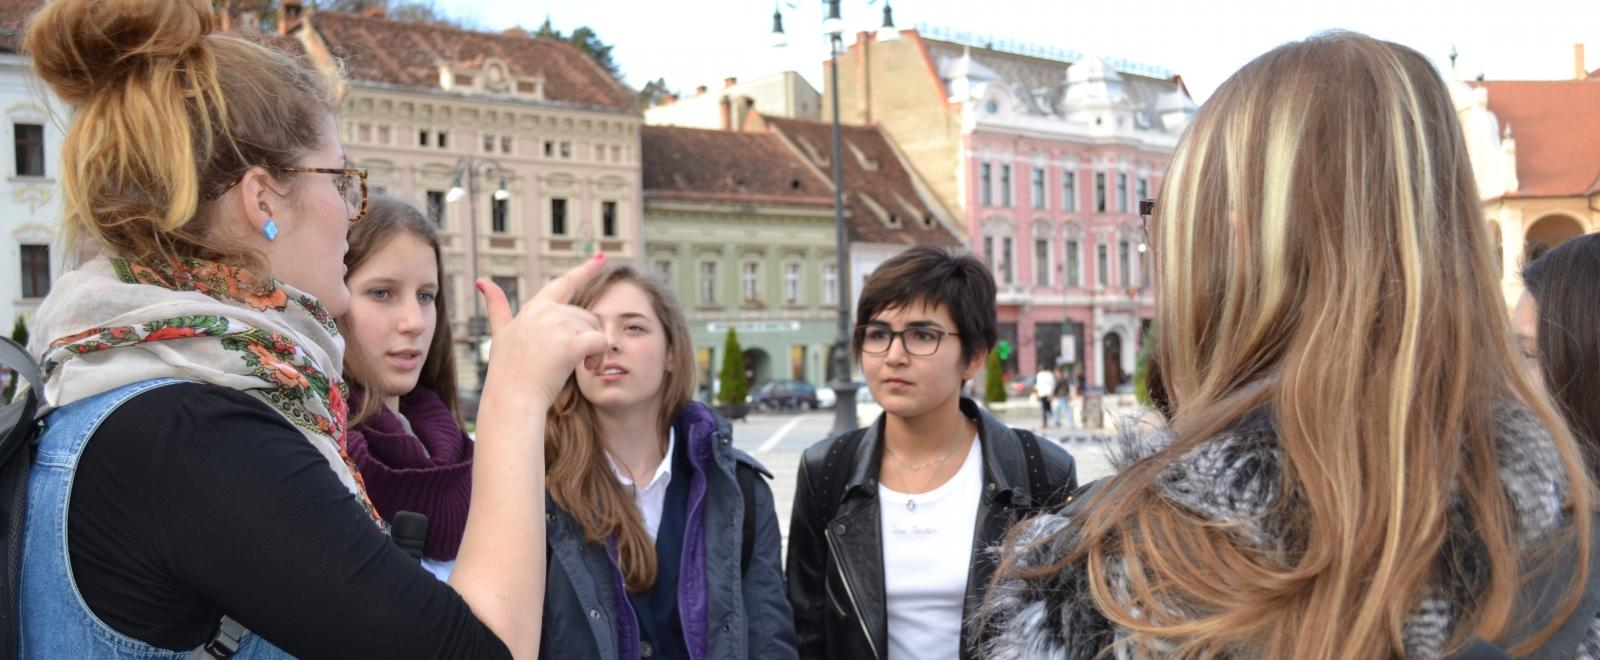 Volunteers in Romania listen to a Projects Abroad staff member during an induction tour.